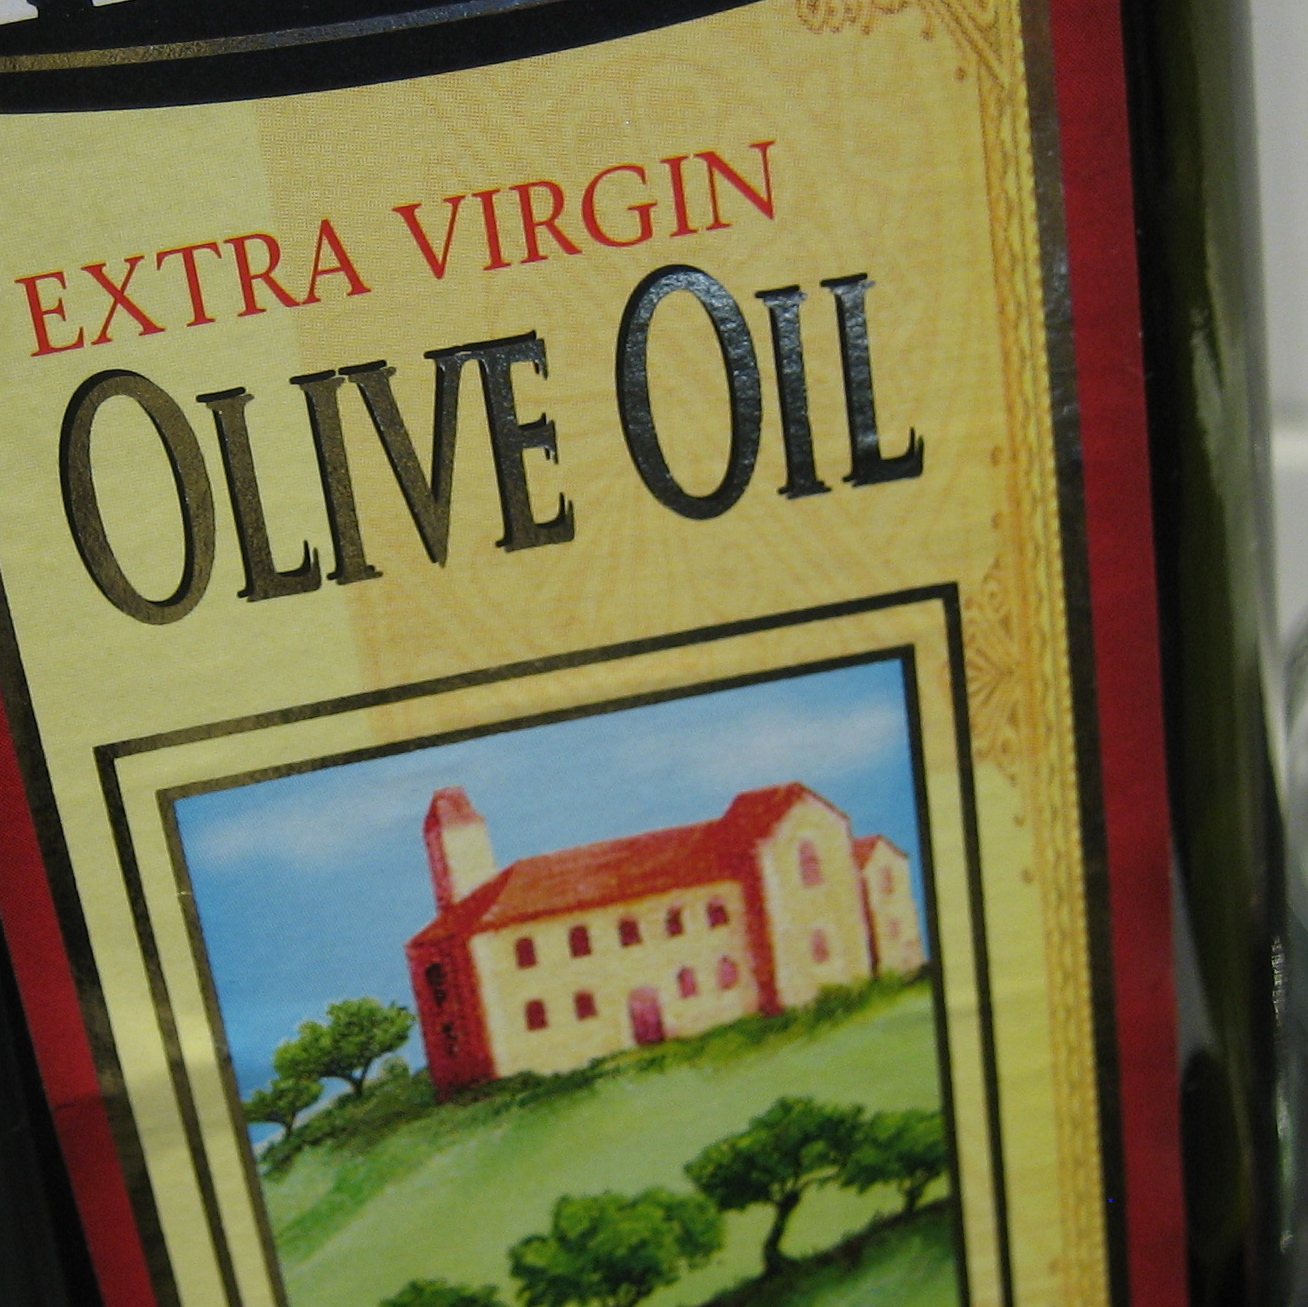 Our Handmade Home: Using Olive Oil as a Wood Treatment